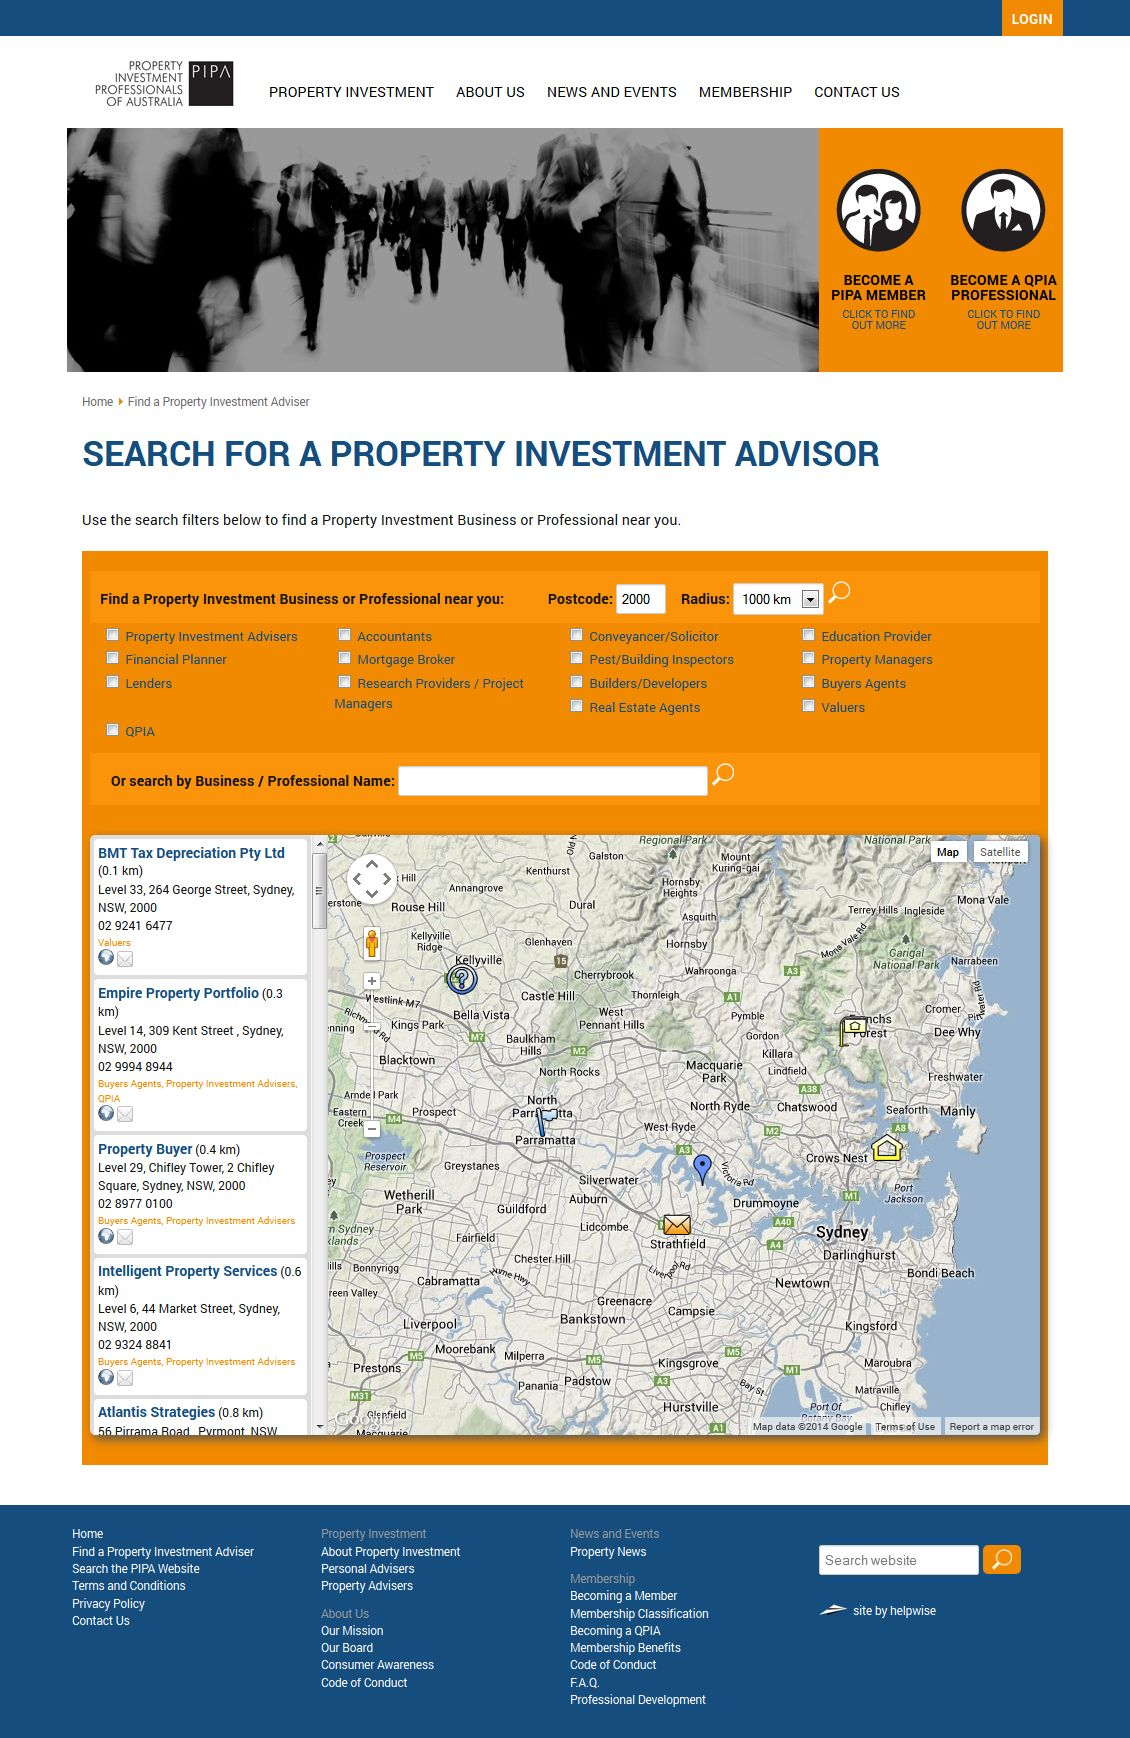 Property Investment Professionals of Australia